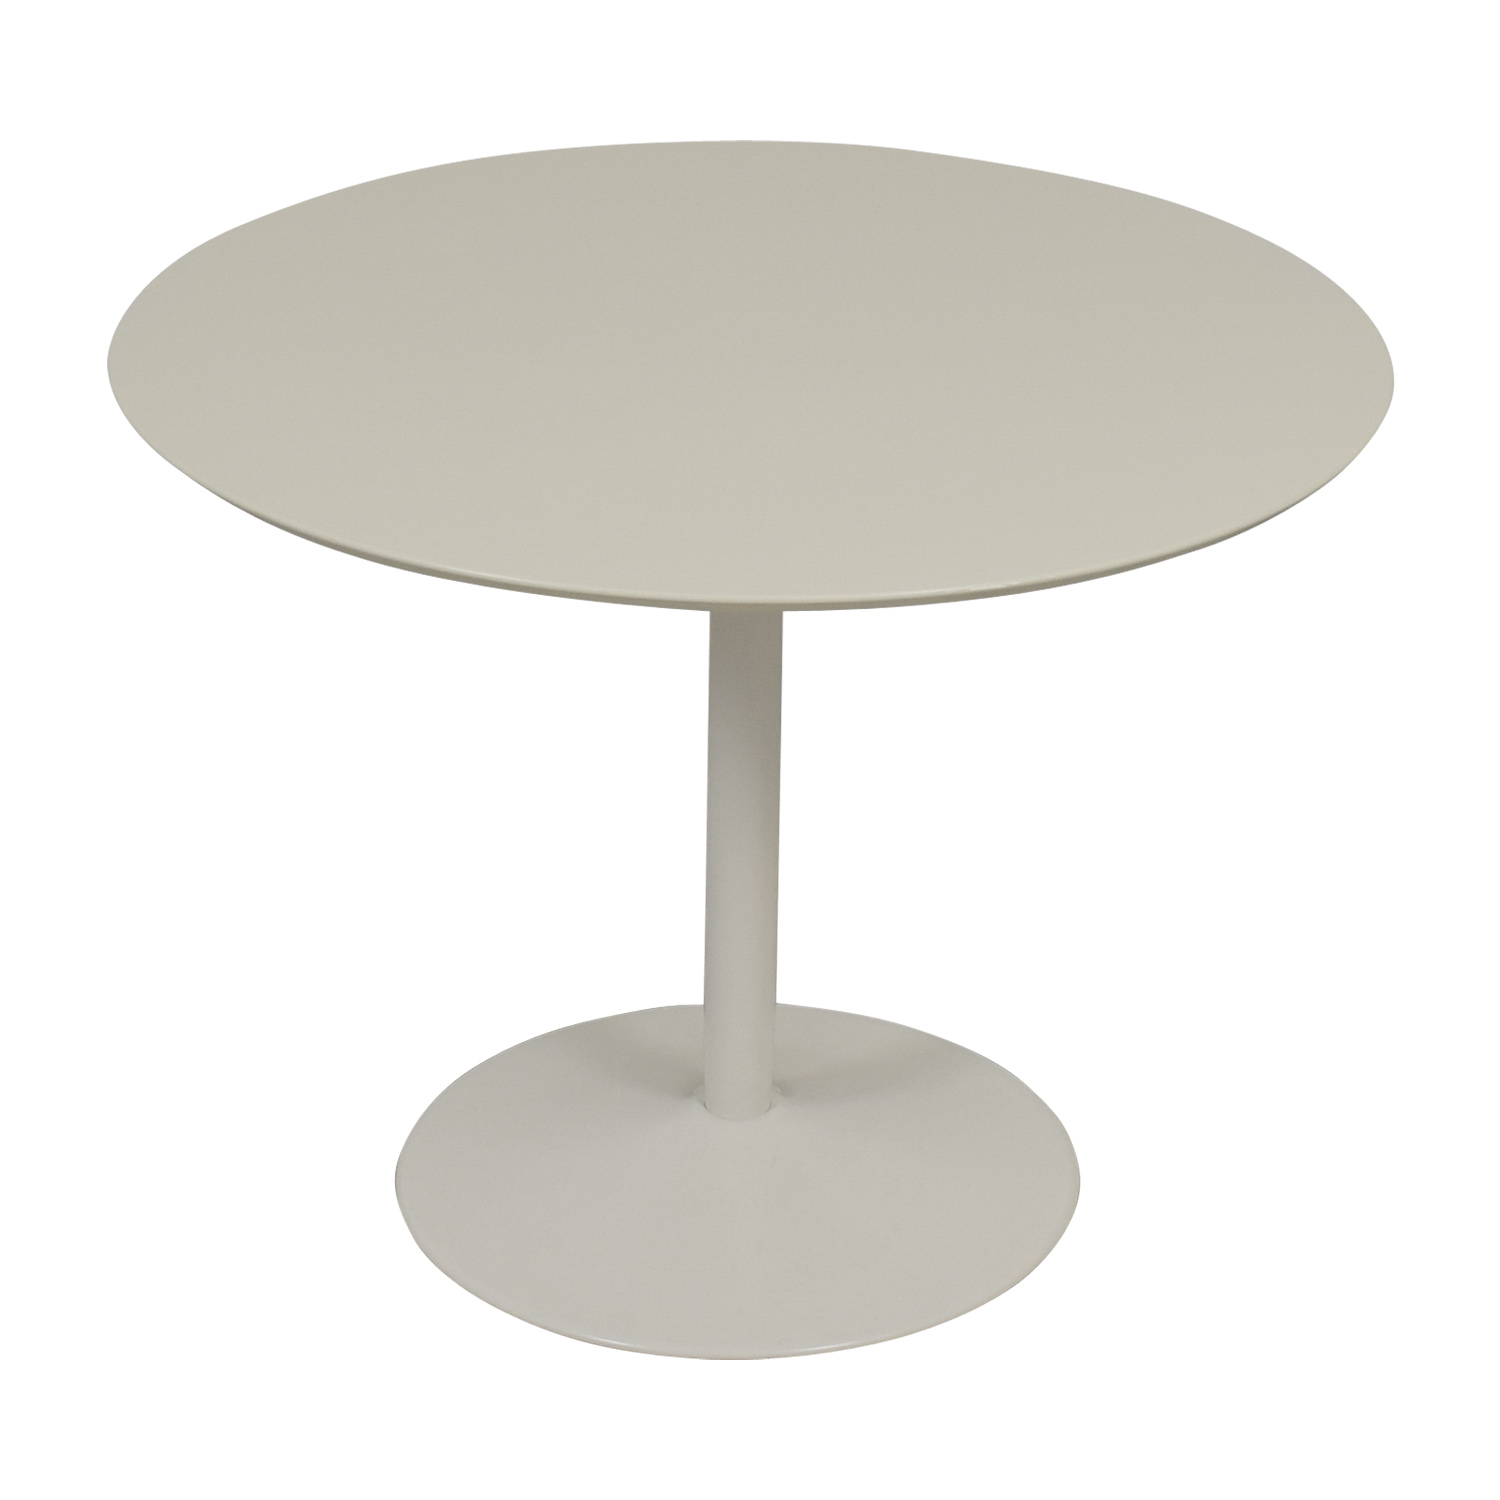 CB2 CB2 Odyssey White Dining Table price